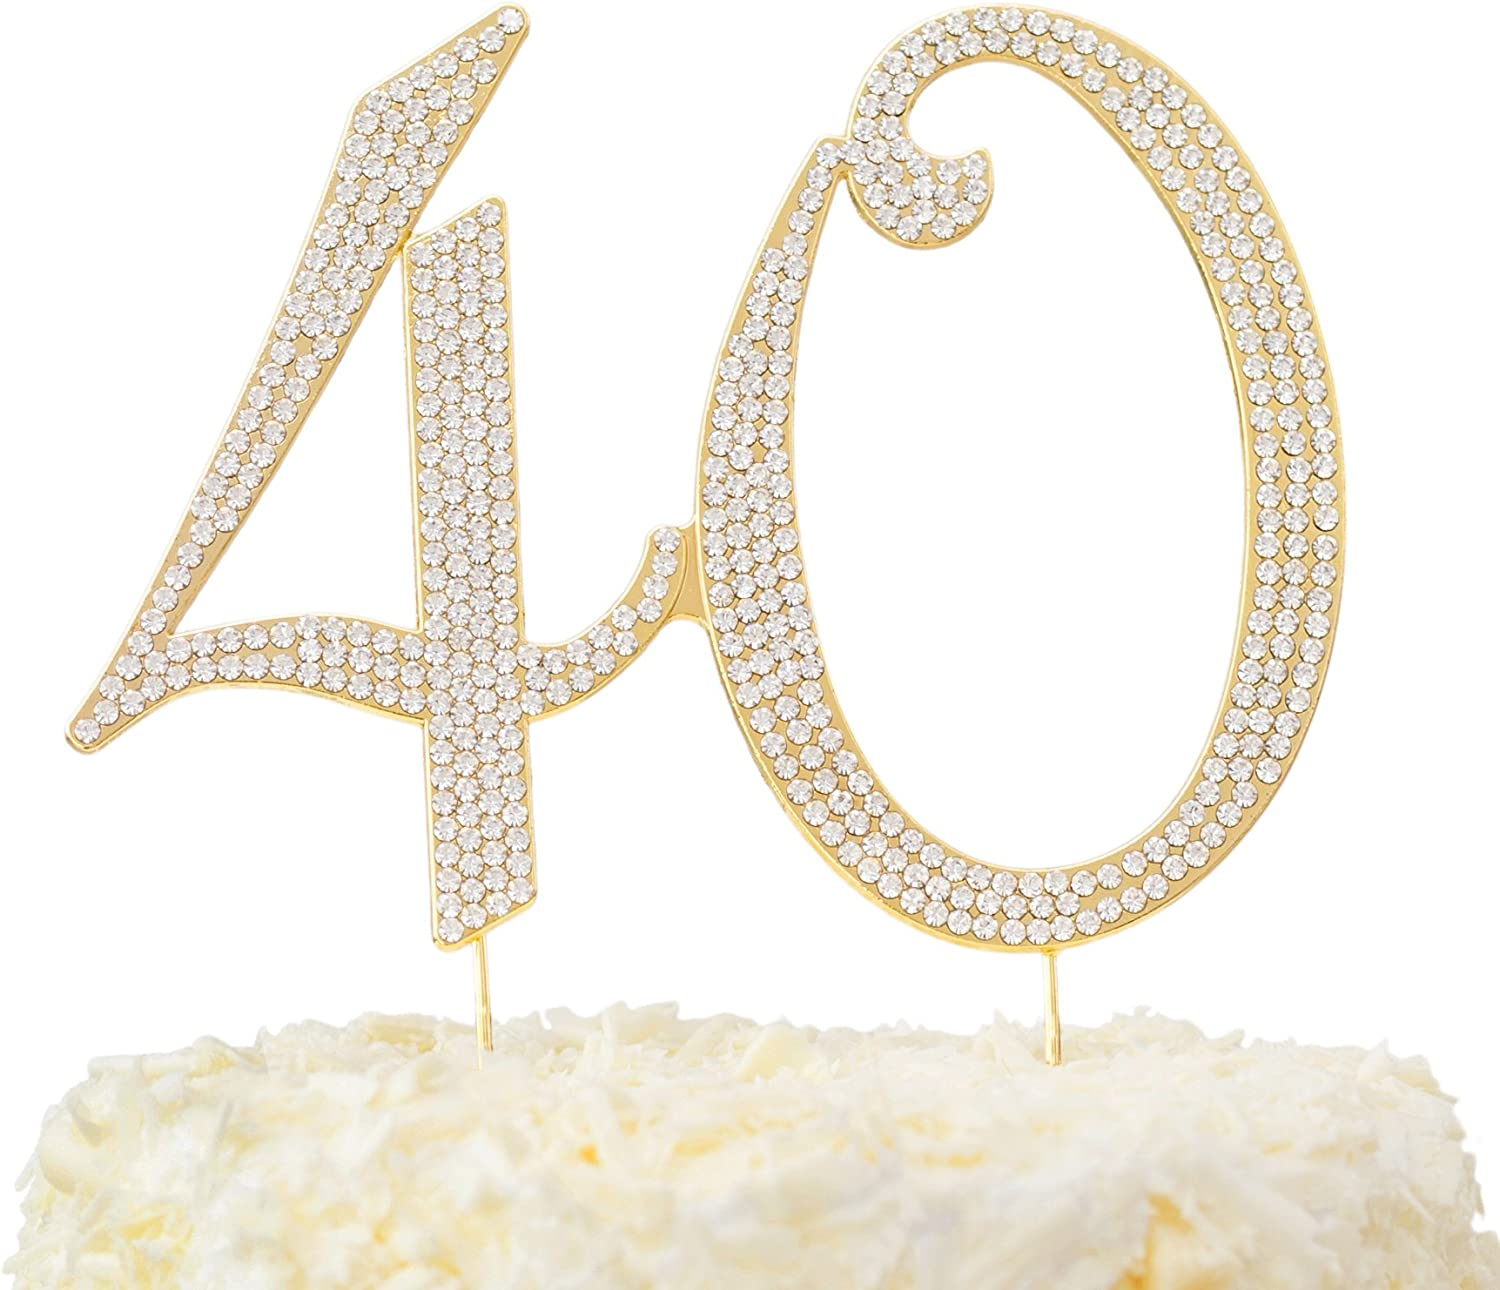 40 Birthday Cake Topper Gold in Box 40th Gift Happy quality Omaha Mall assurance An